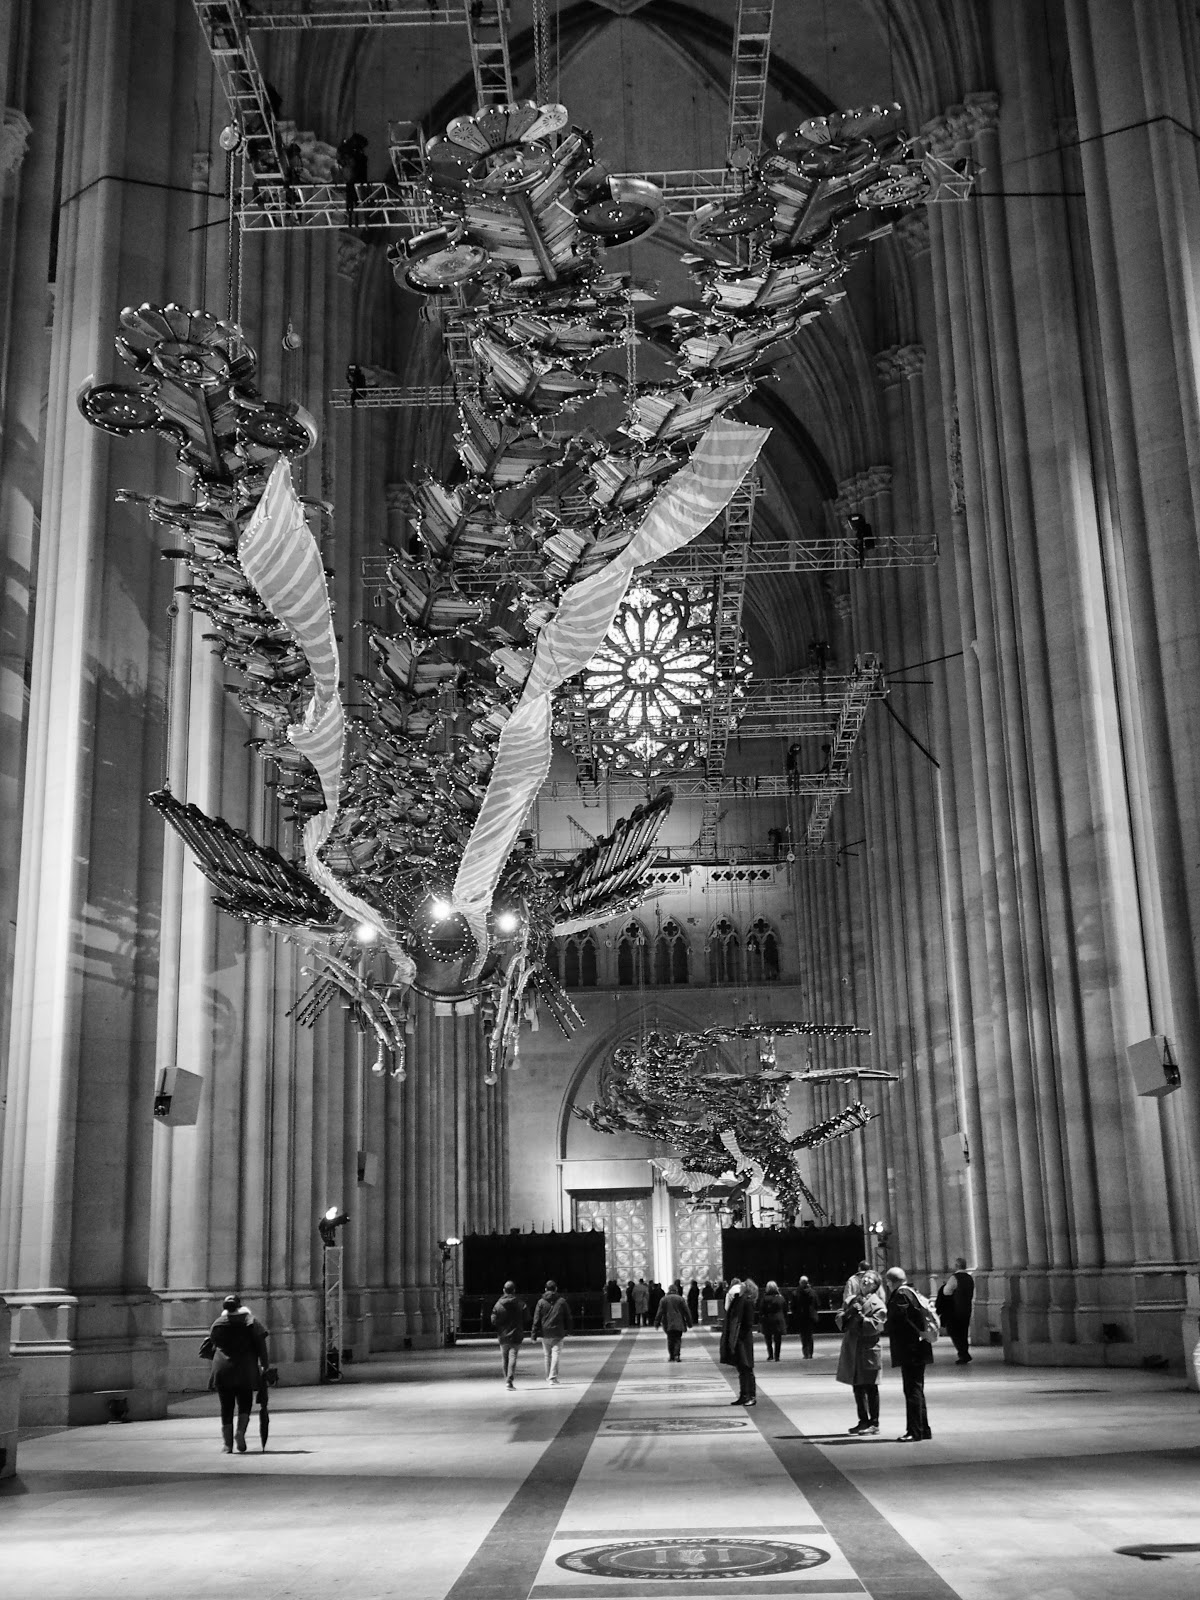 Length #length #phoenix  #xubing #stjohnthedivinecathedral #art #nyc ©2014 Nancy Lundebjerg